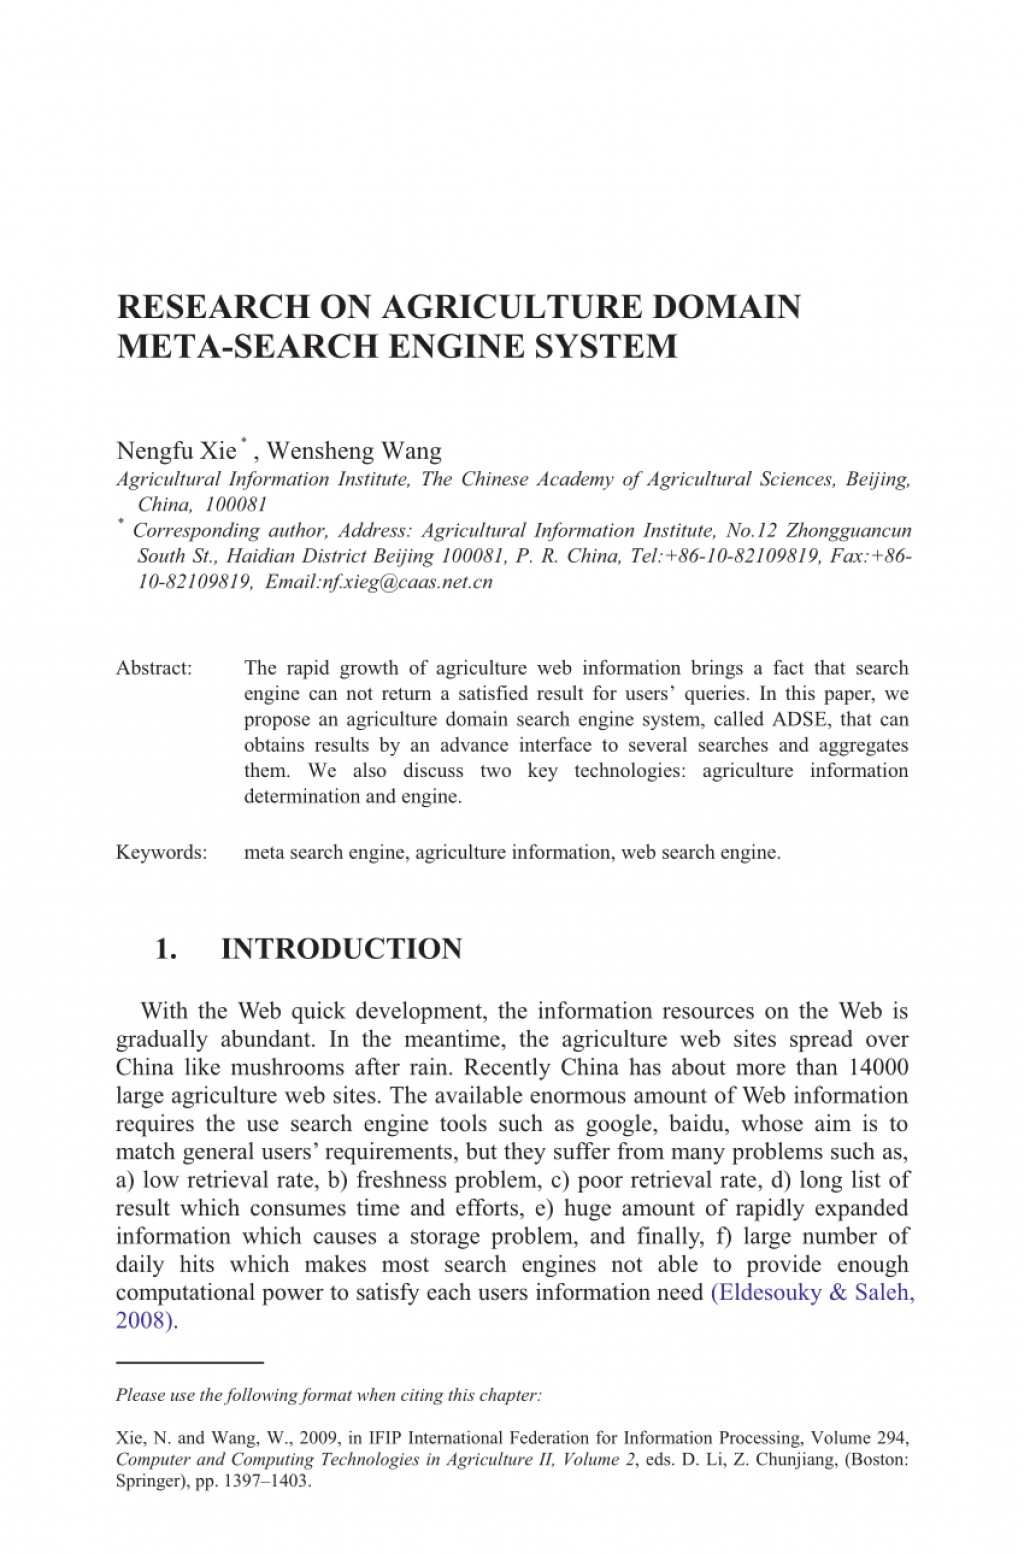 001 Meta Search Engine Research Paper Formidable Large